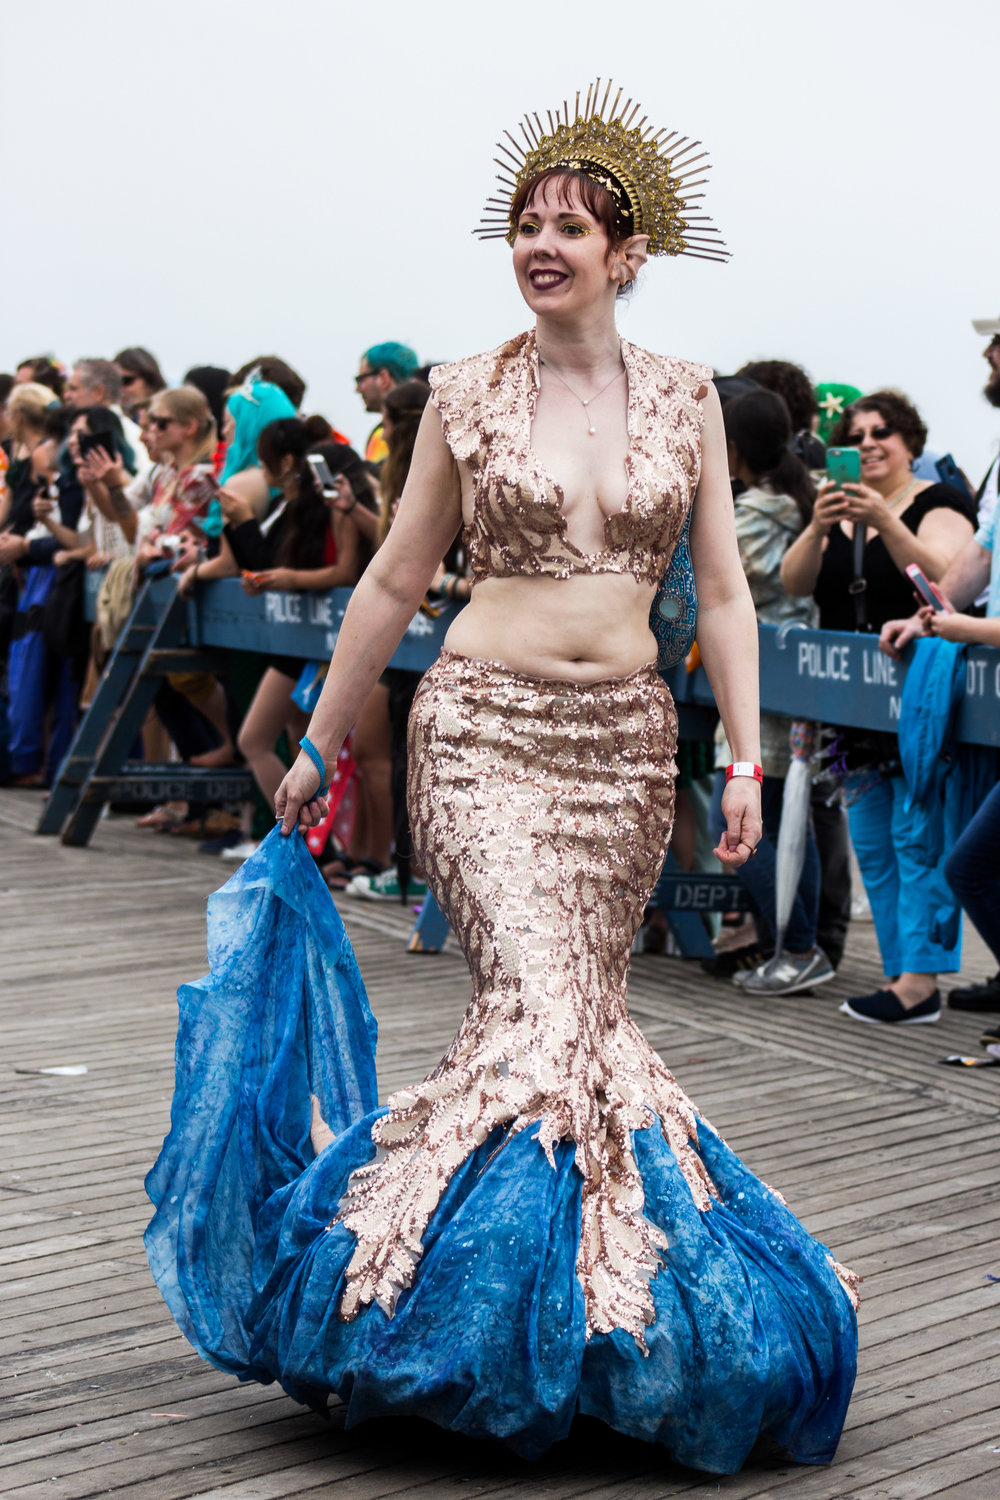 MermaidParade-112.jpg